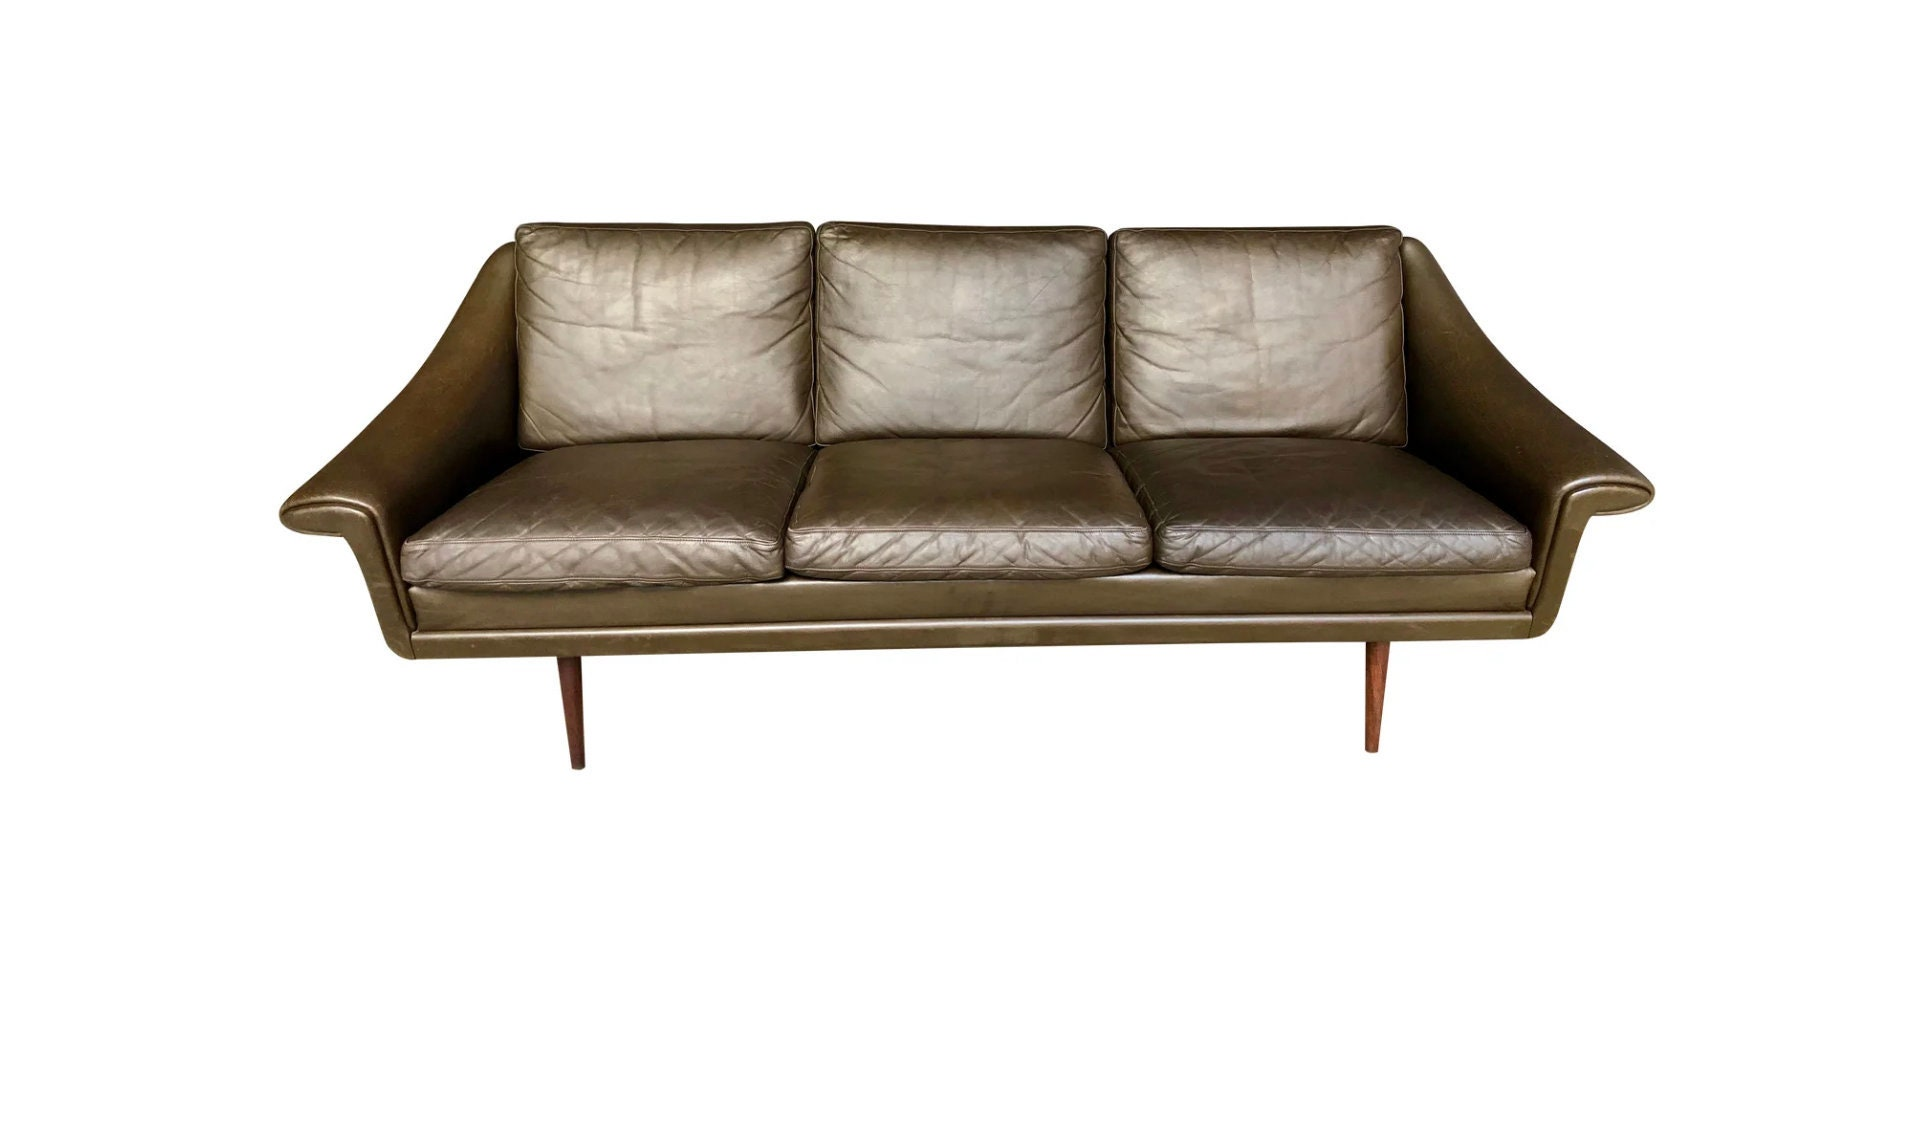 Mid Century Danish Modern Brown Leather Sofa Attr To Svend Skipper Three Seat Couch Teak Legs